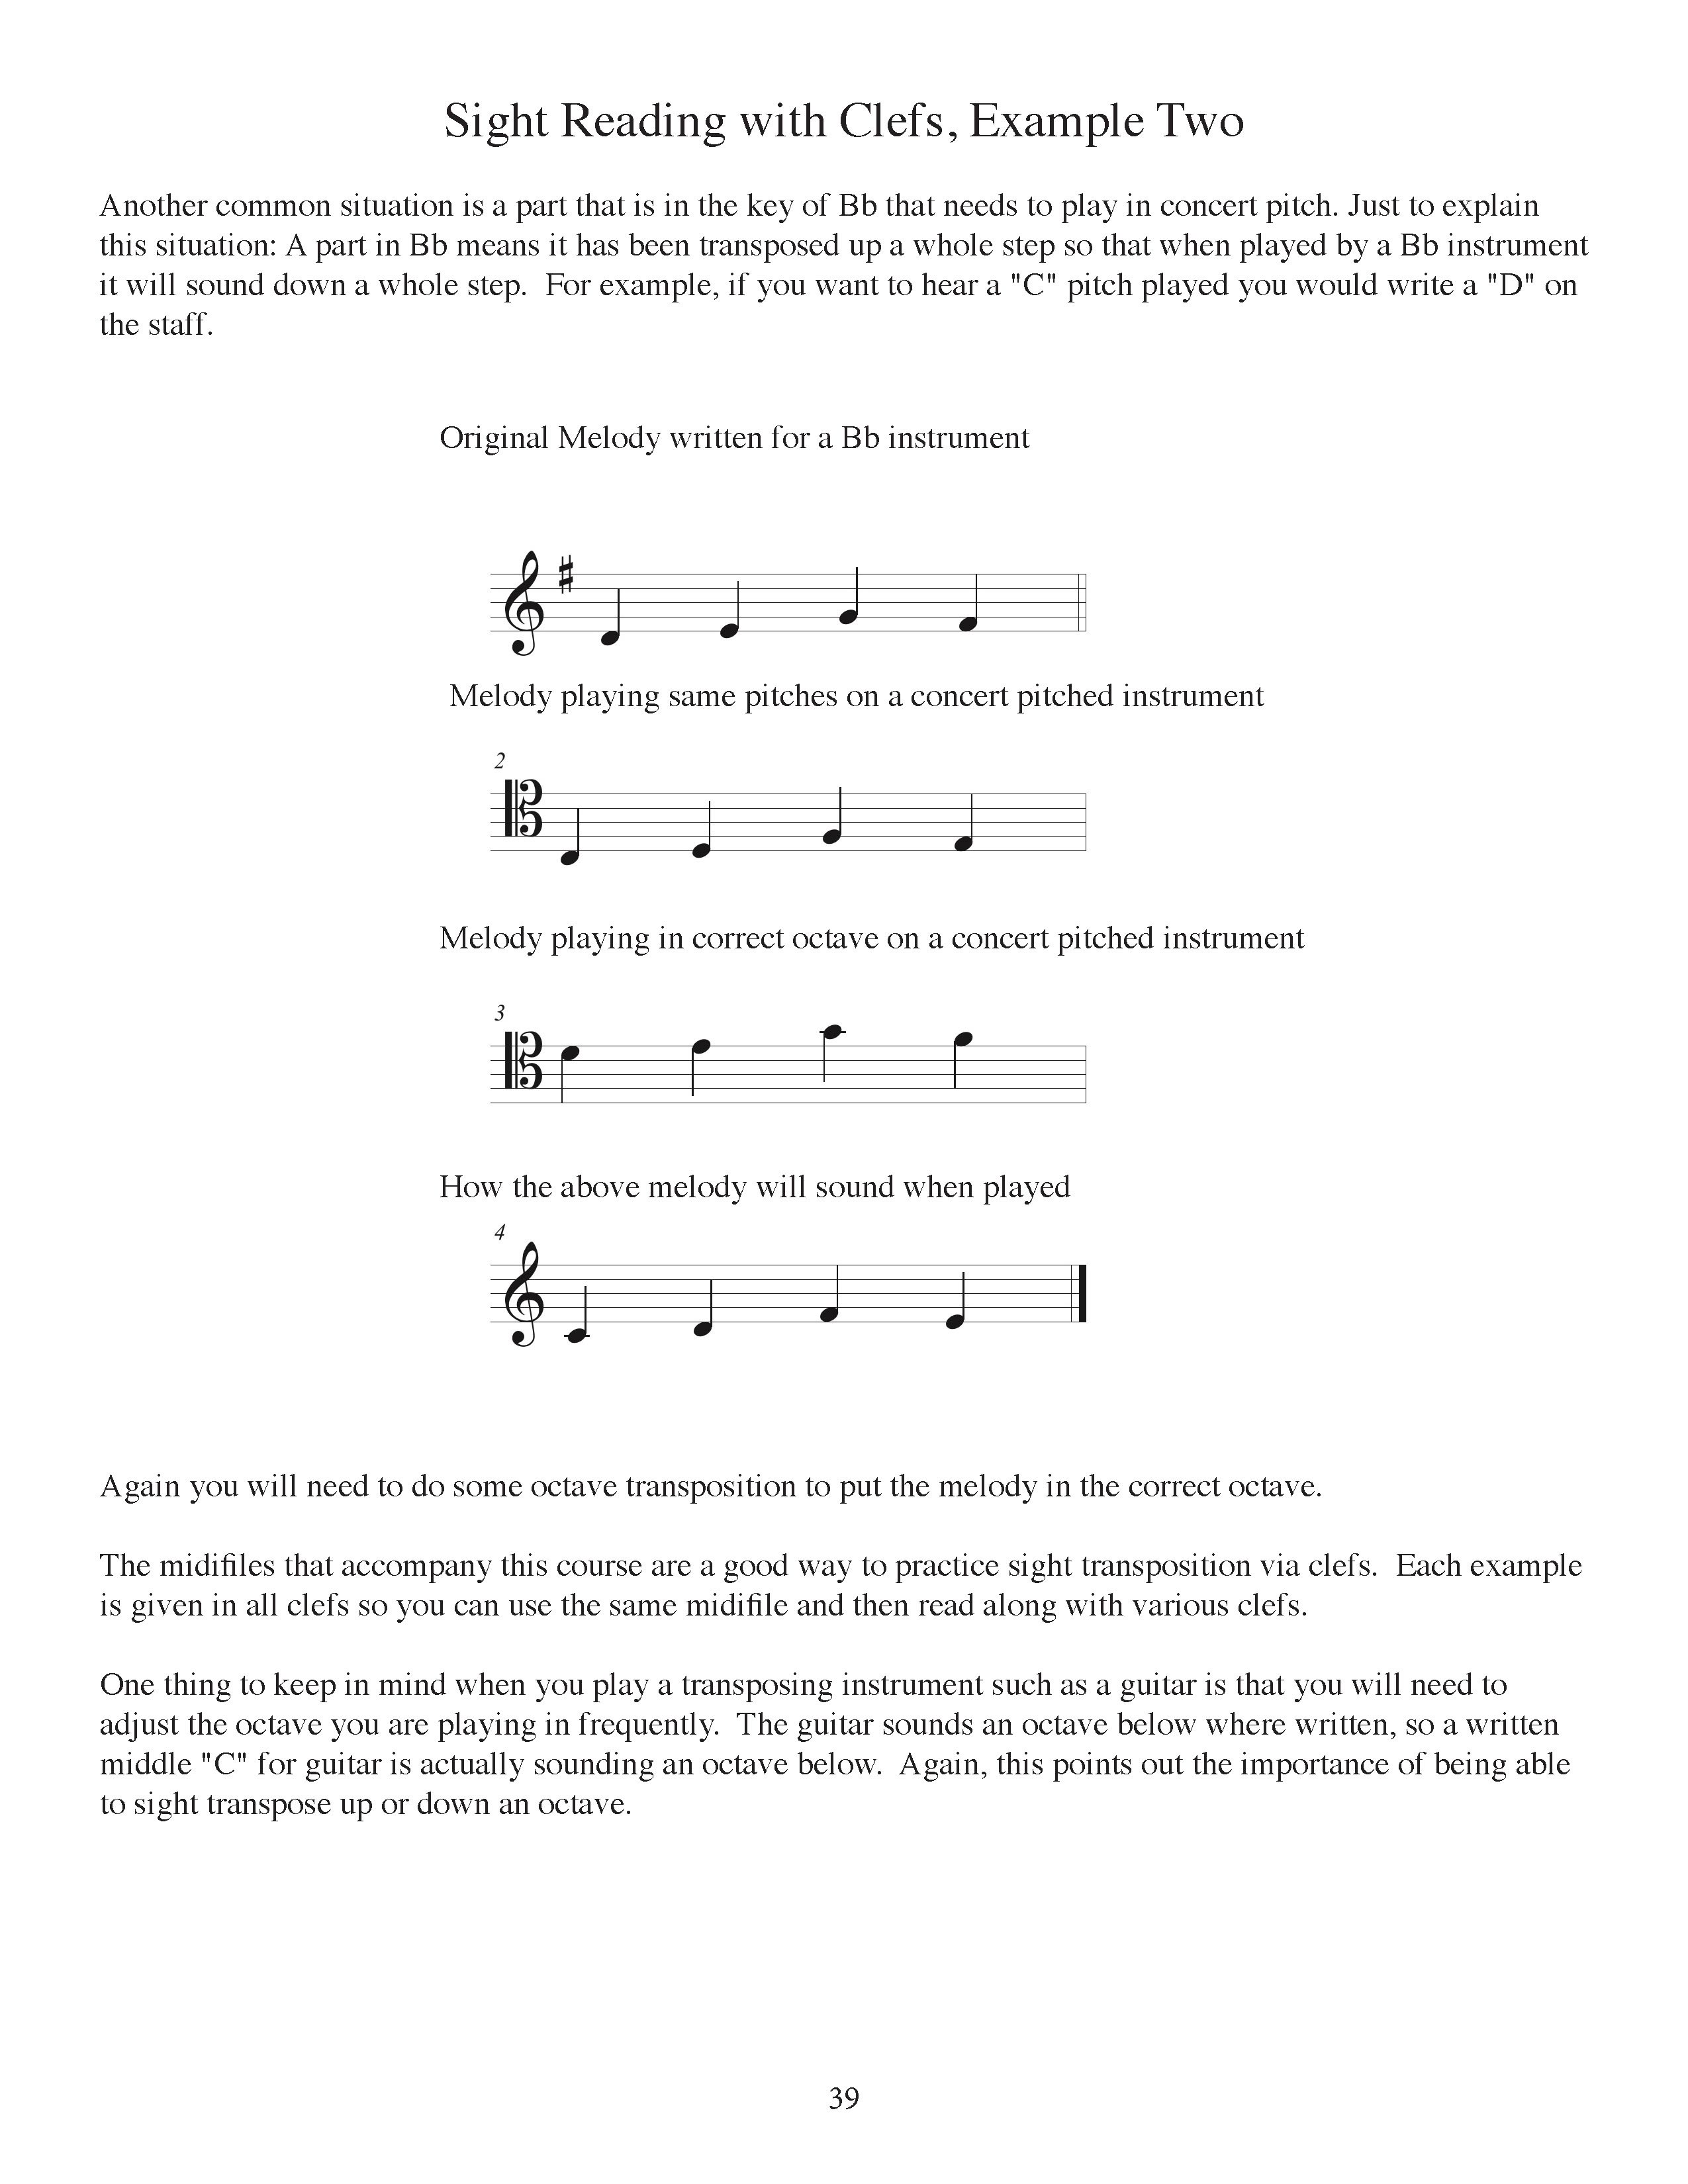 Clef-transposition-Sight-Reading-Solved-Comprehensive-Beginning-Music-Reading-72dpi